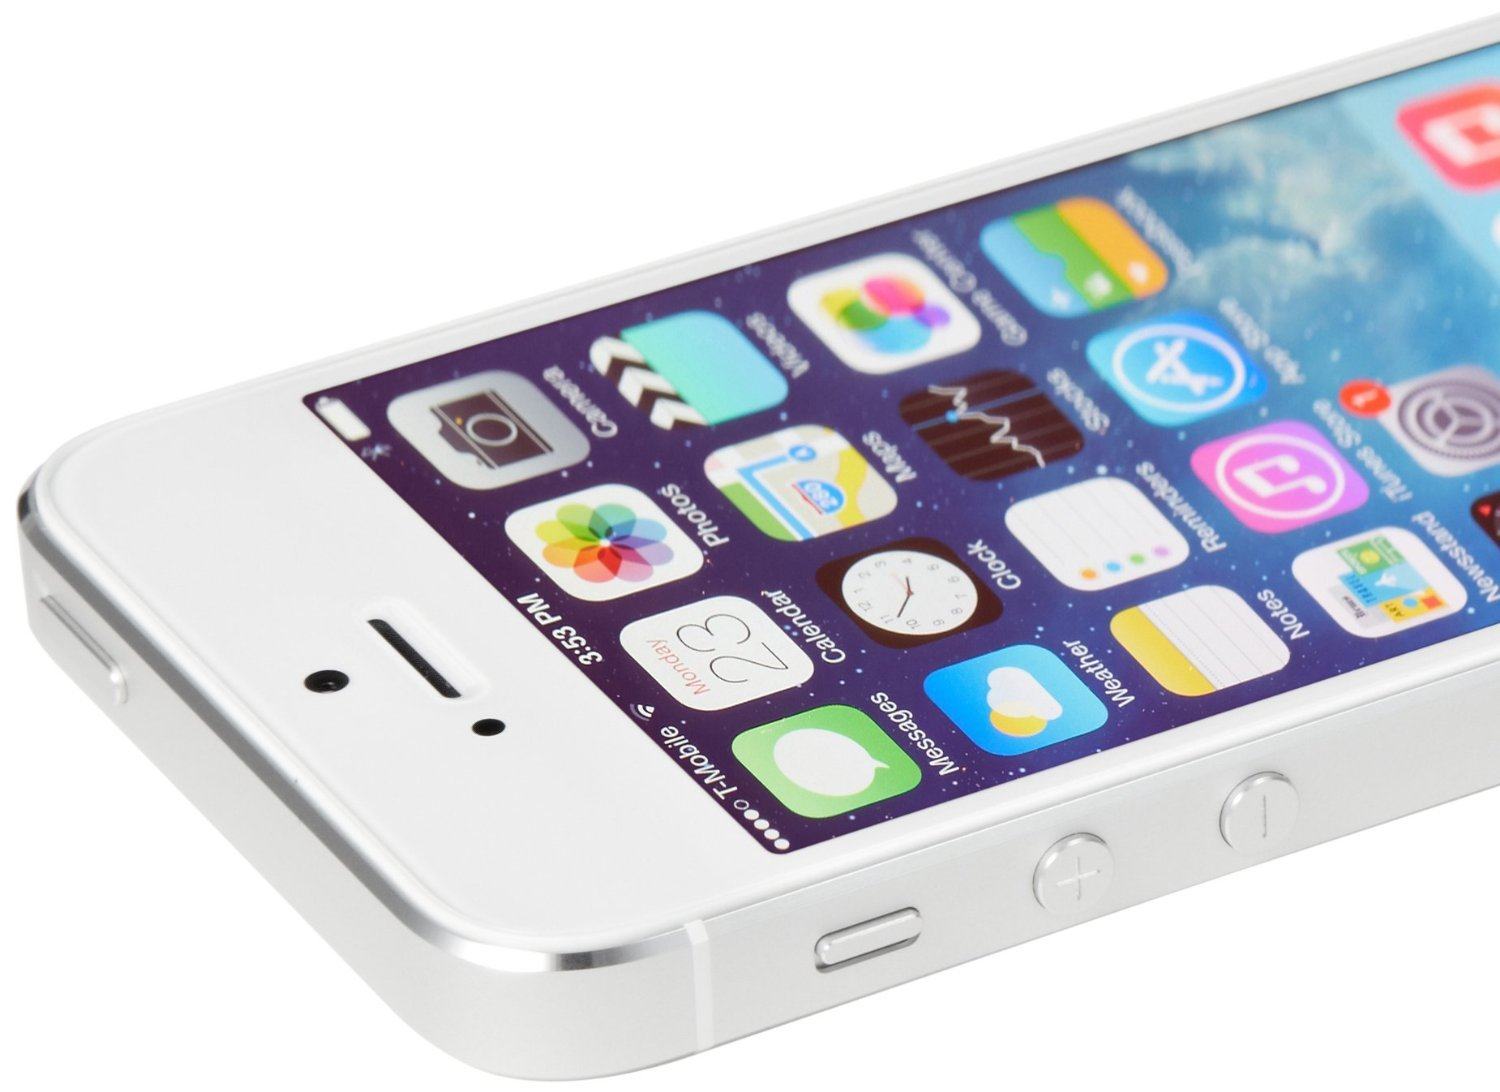 Apple iPhone 5S 16GB GSM Unlocked, Silver (Certified Refurbished) by Apple (Image #3)